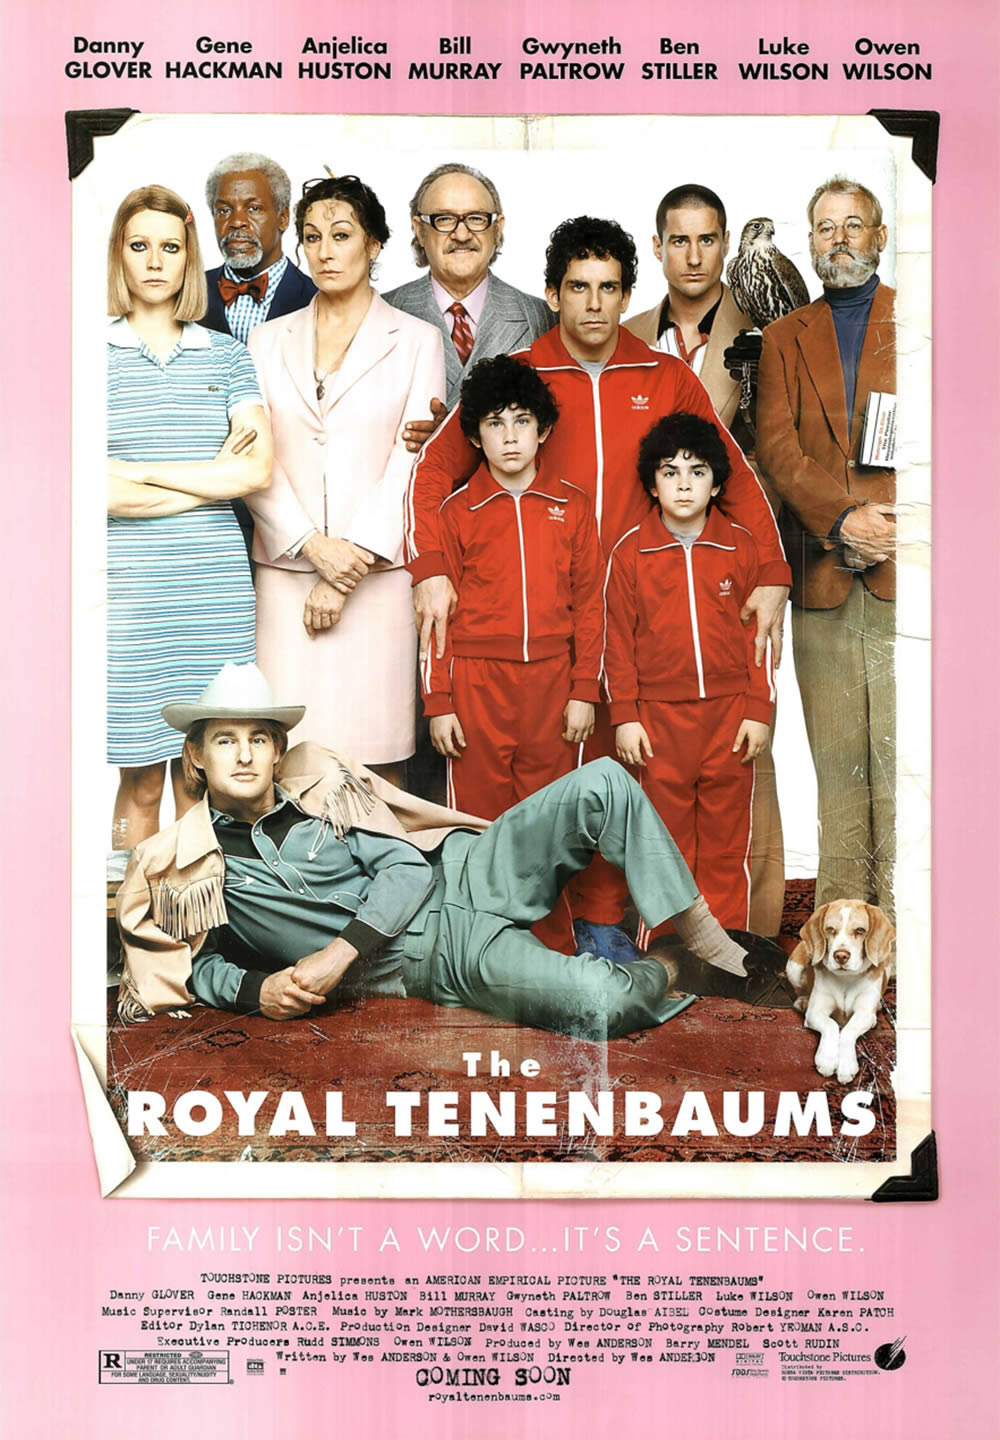 """The Royal Tenenbaums"" (2001). Poster design by BLT Communications, LLC."